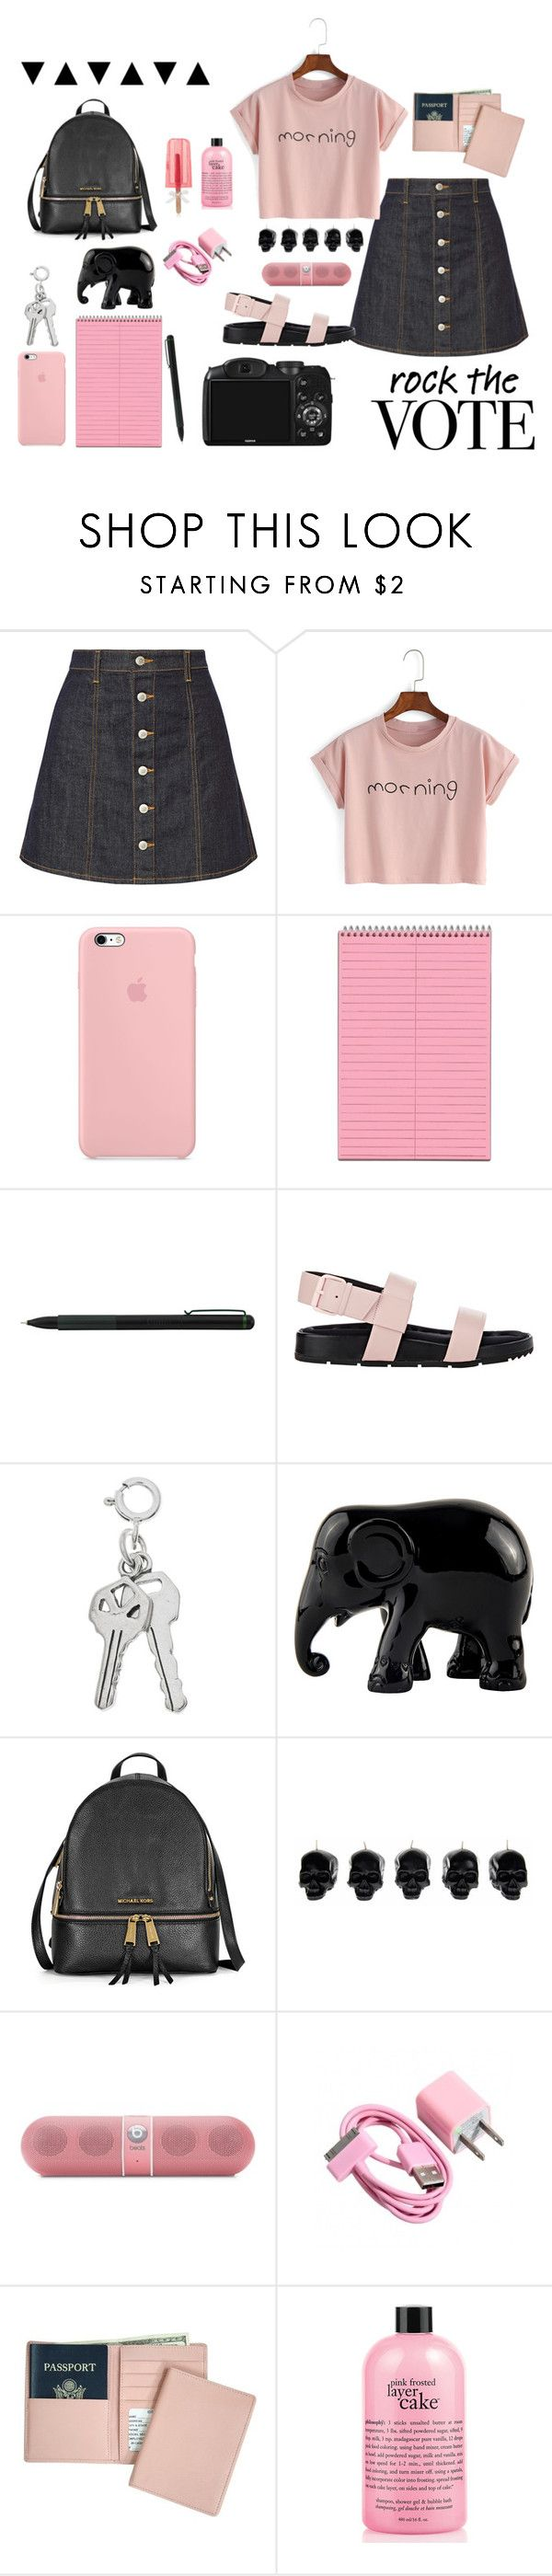 """""""Sem título #328"""" by rani-gomes ❤ liked on Polyvore featuring AG Adriano Goldschmied, IDEA International, CO, Balenciaga, The Elephant Family, D.L. & Co., Beats by Dr. Dre, Royce Leather and philosophy"""